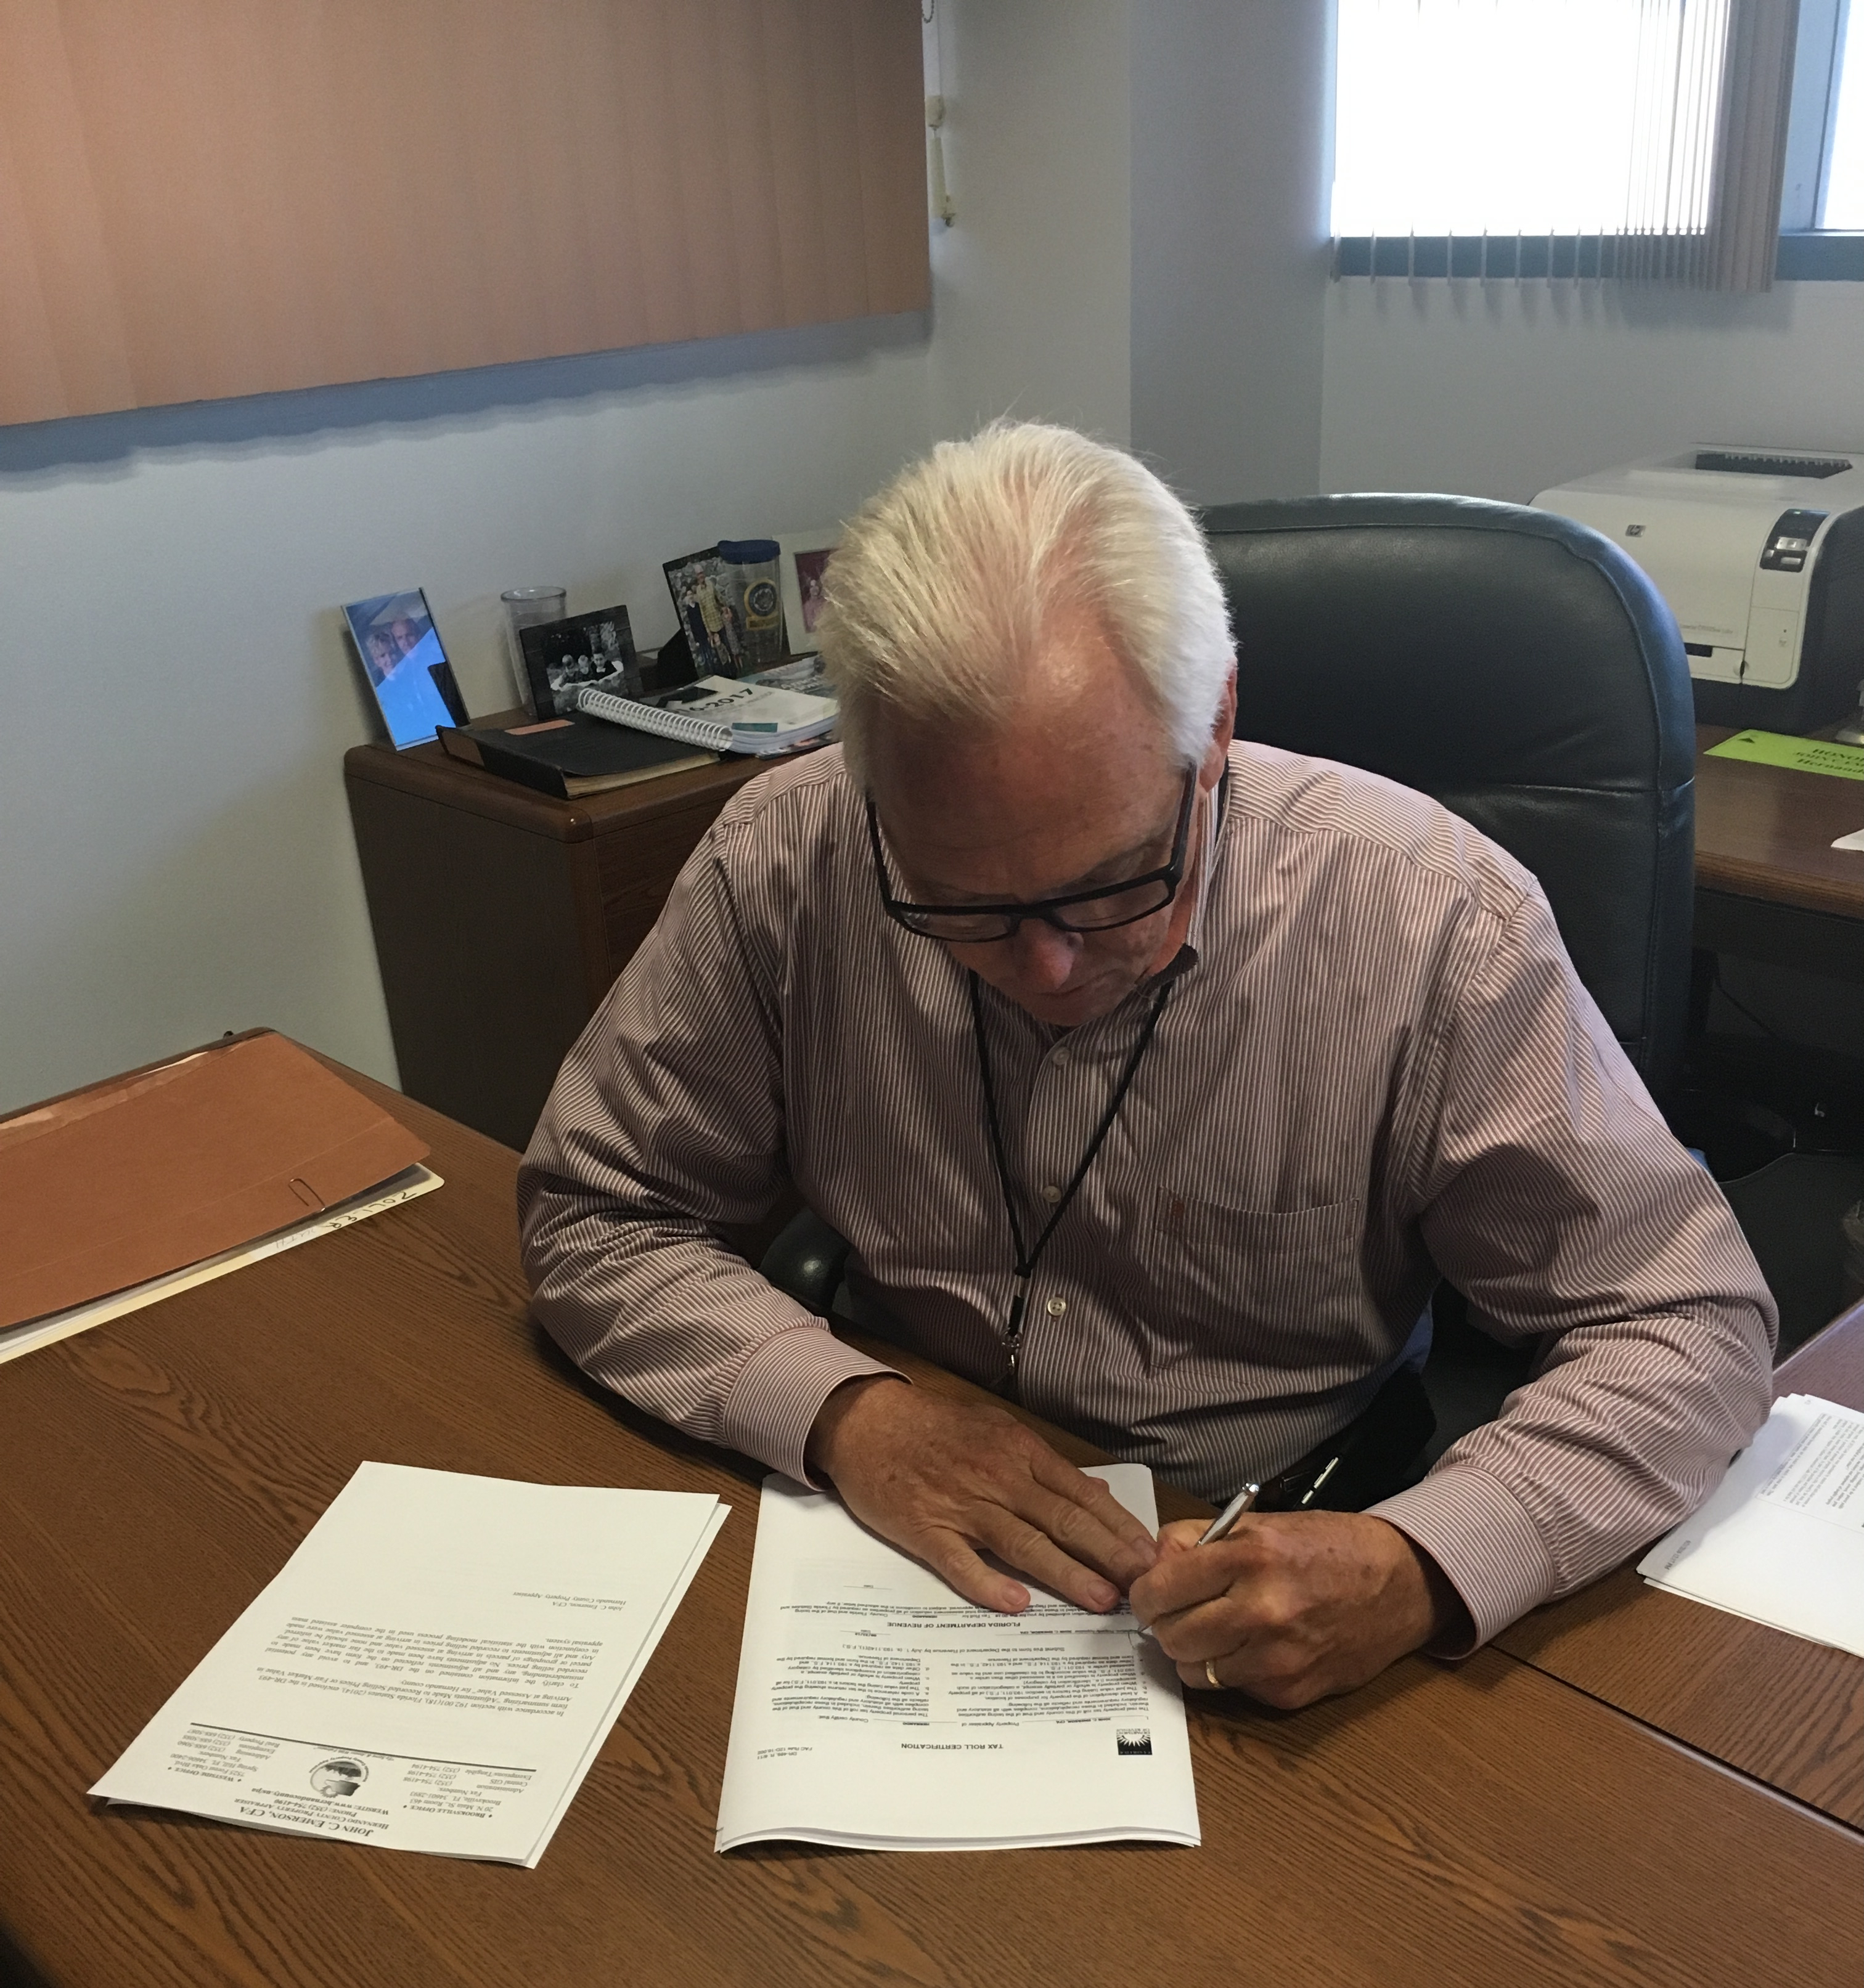 2014 oneida county tax rolls - John Emerson Signing The 2016 Final Tax Roll For Submission To The Department Of Revenue The Certification Of The Final Roll Is Then Sent To The Tax